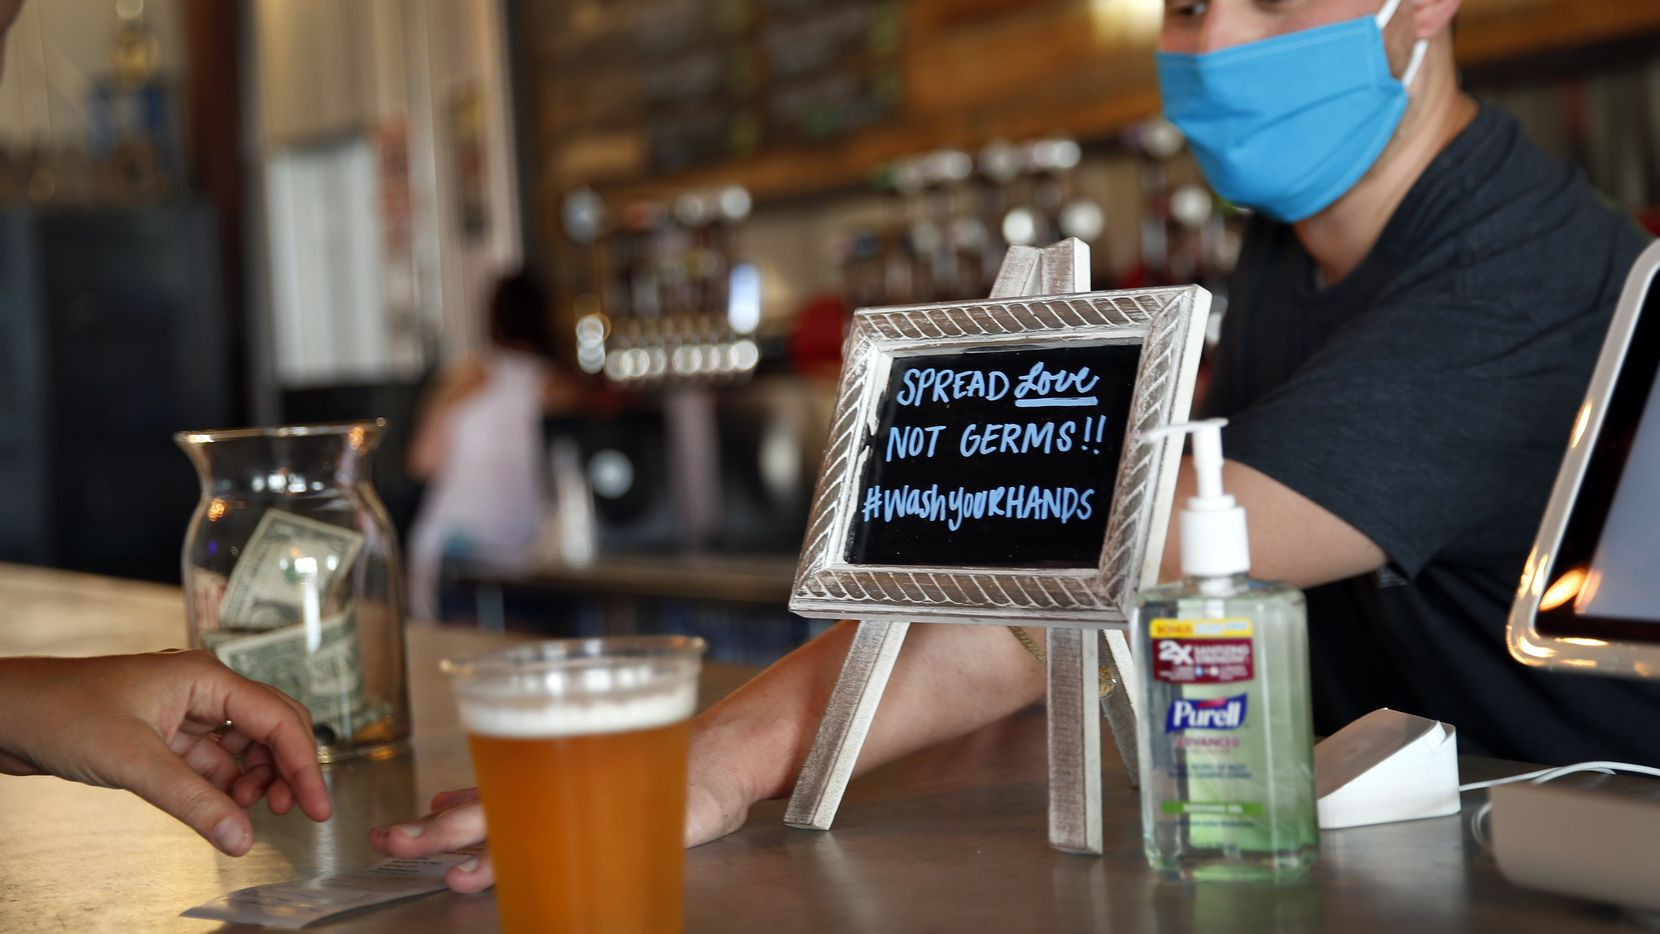 Patrons return to the Legal Draft in Arlington, Texas with a bar sign reminding them to please wash their hands as they've been allowed to reopen, Friday, May 22 2020, during the COVID-19 pandemic. (Tom Fox/The Dallas Morning News)